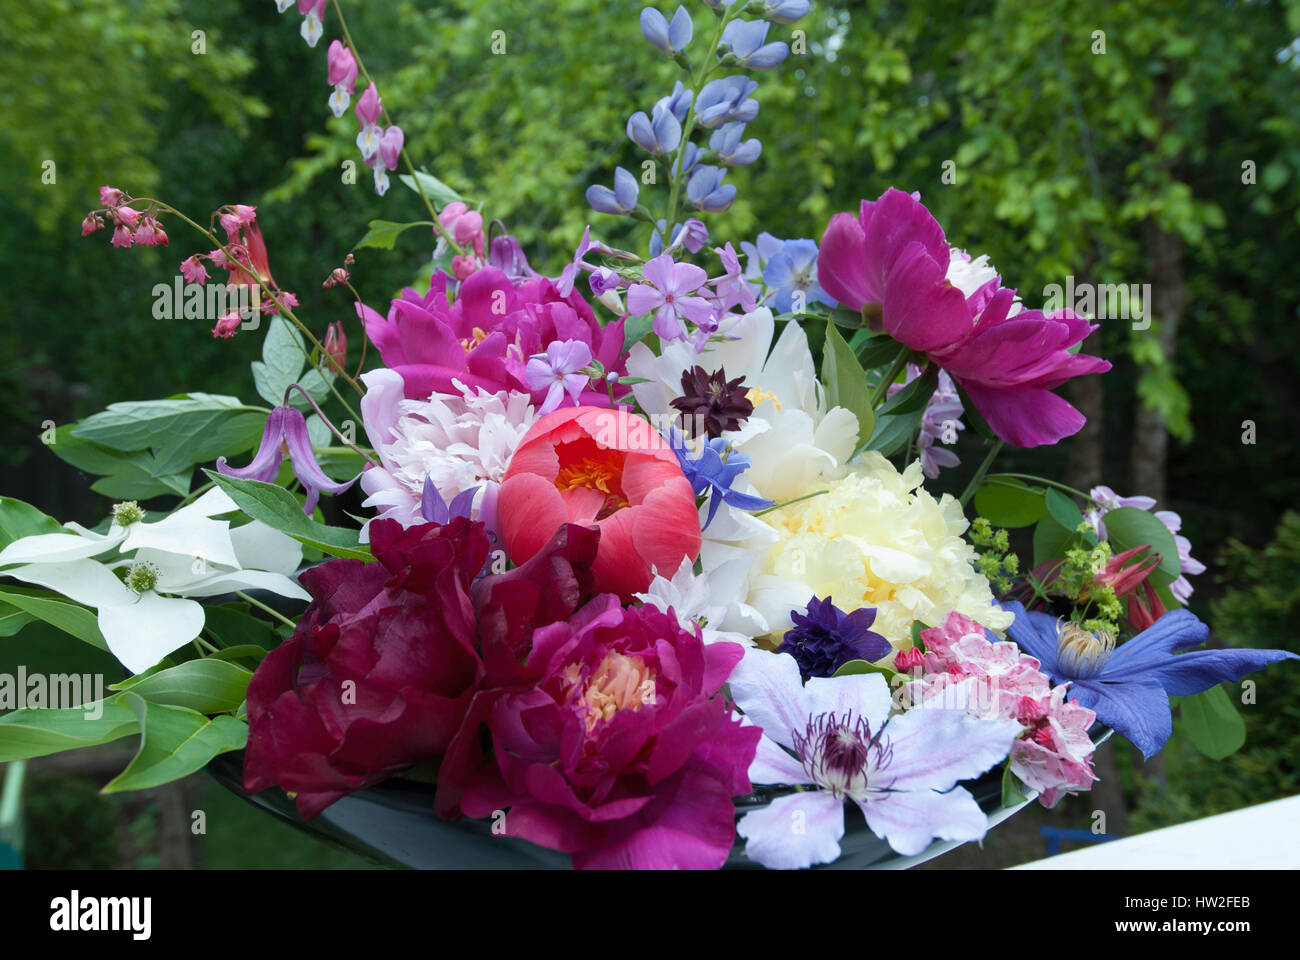 Bouquets of May Flowers, Peonies, Baptisia, Clematis, Bleeding Heart ...